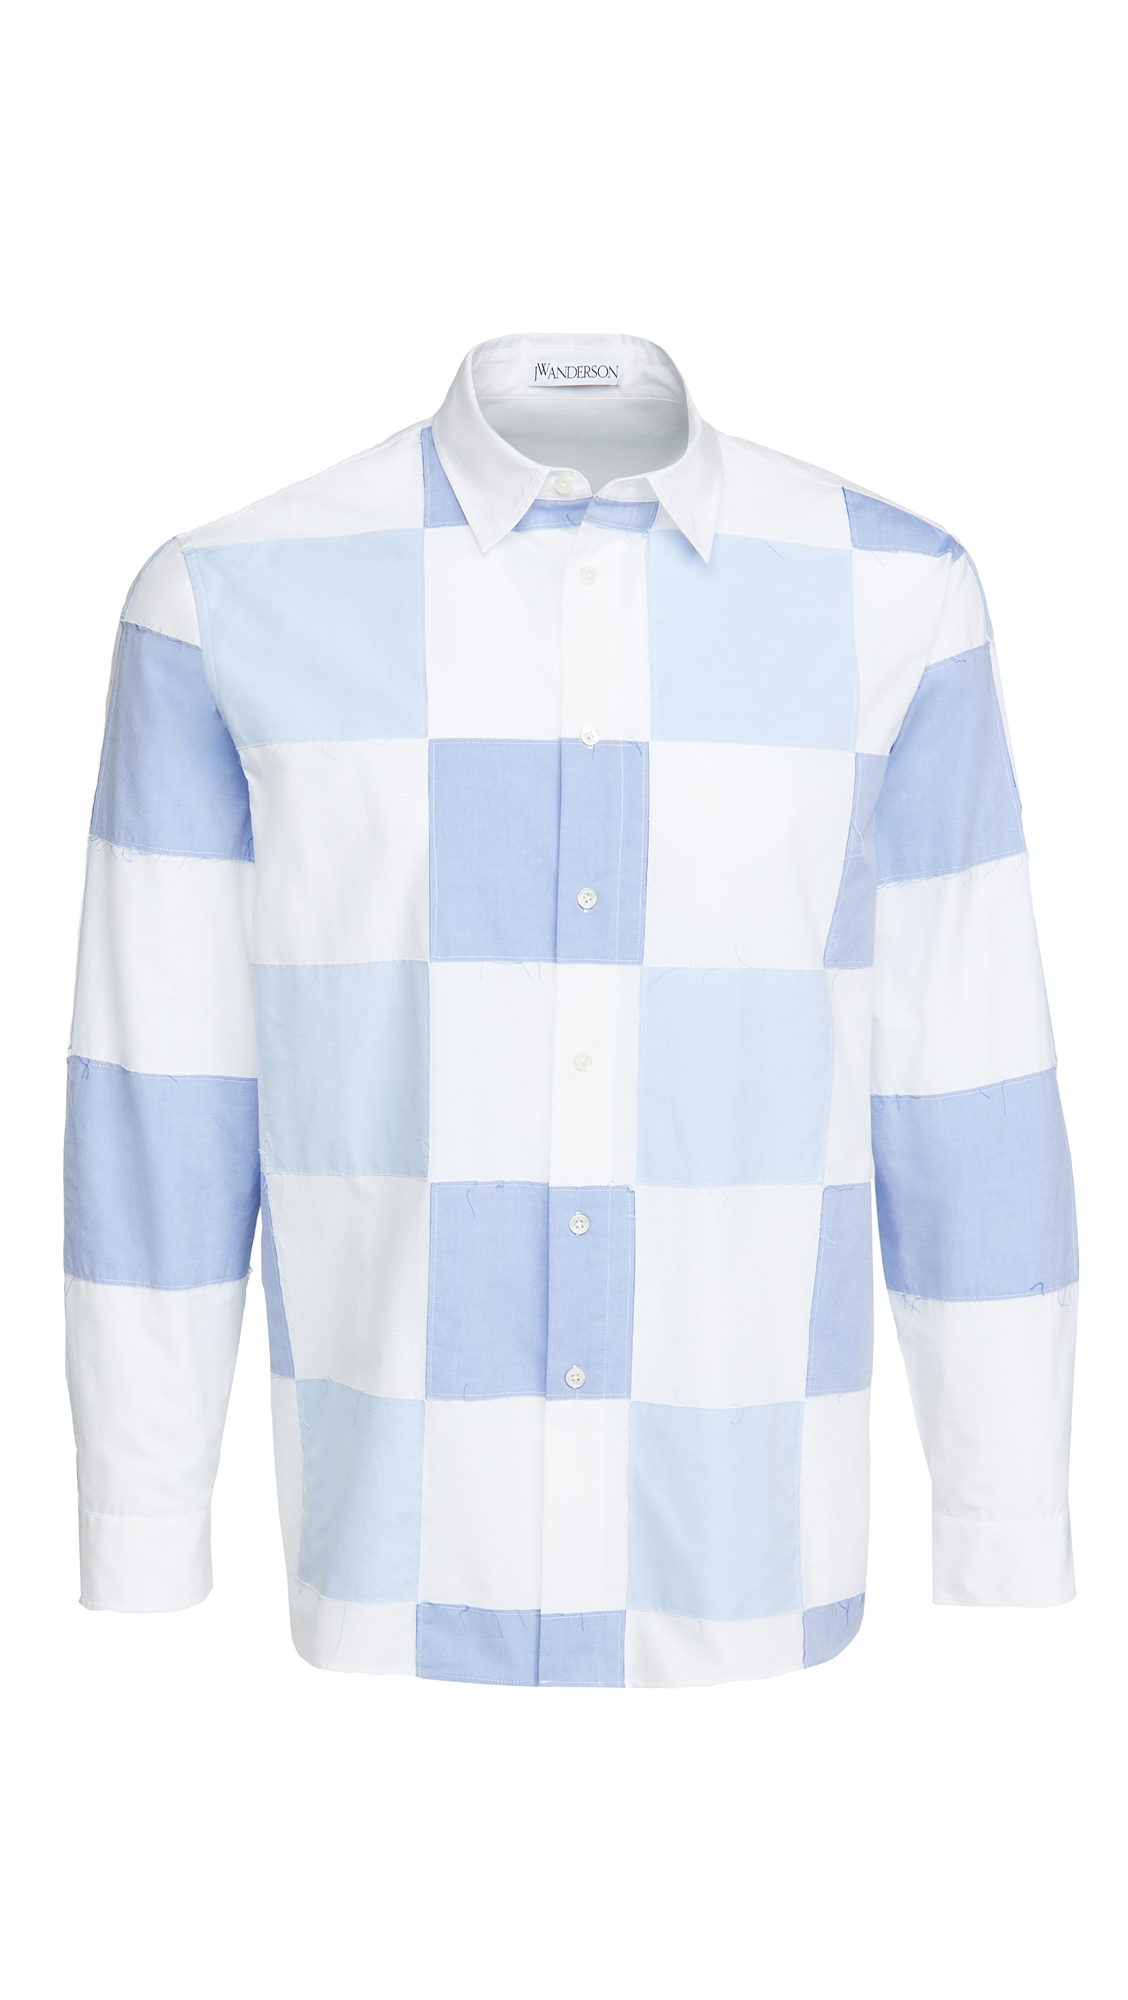 J.W. Anderson Checkerboard Applique Shirt